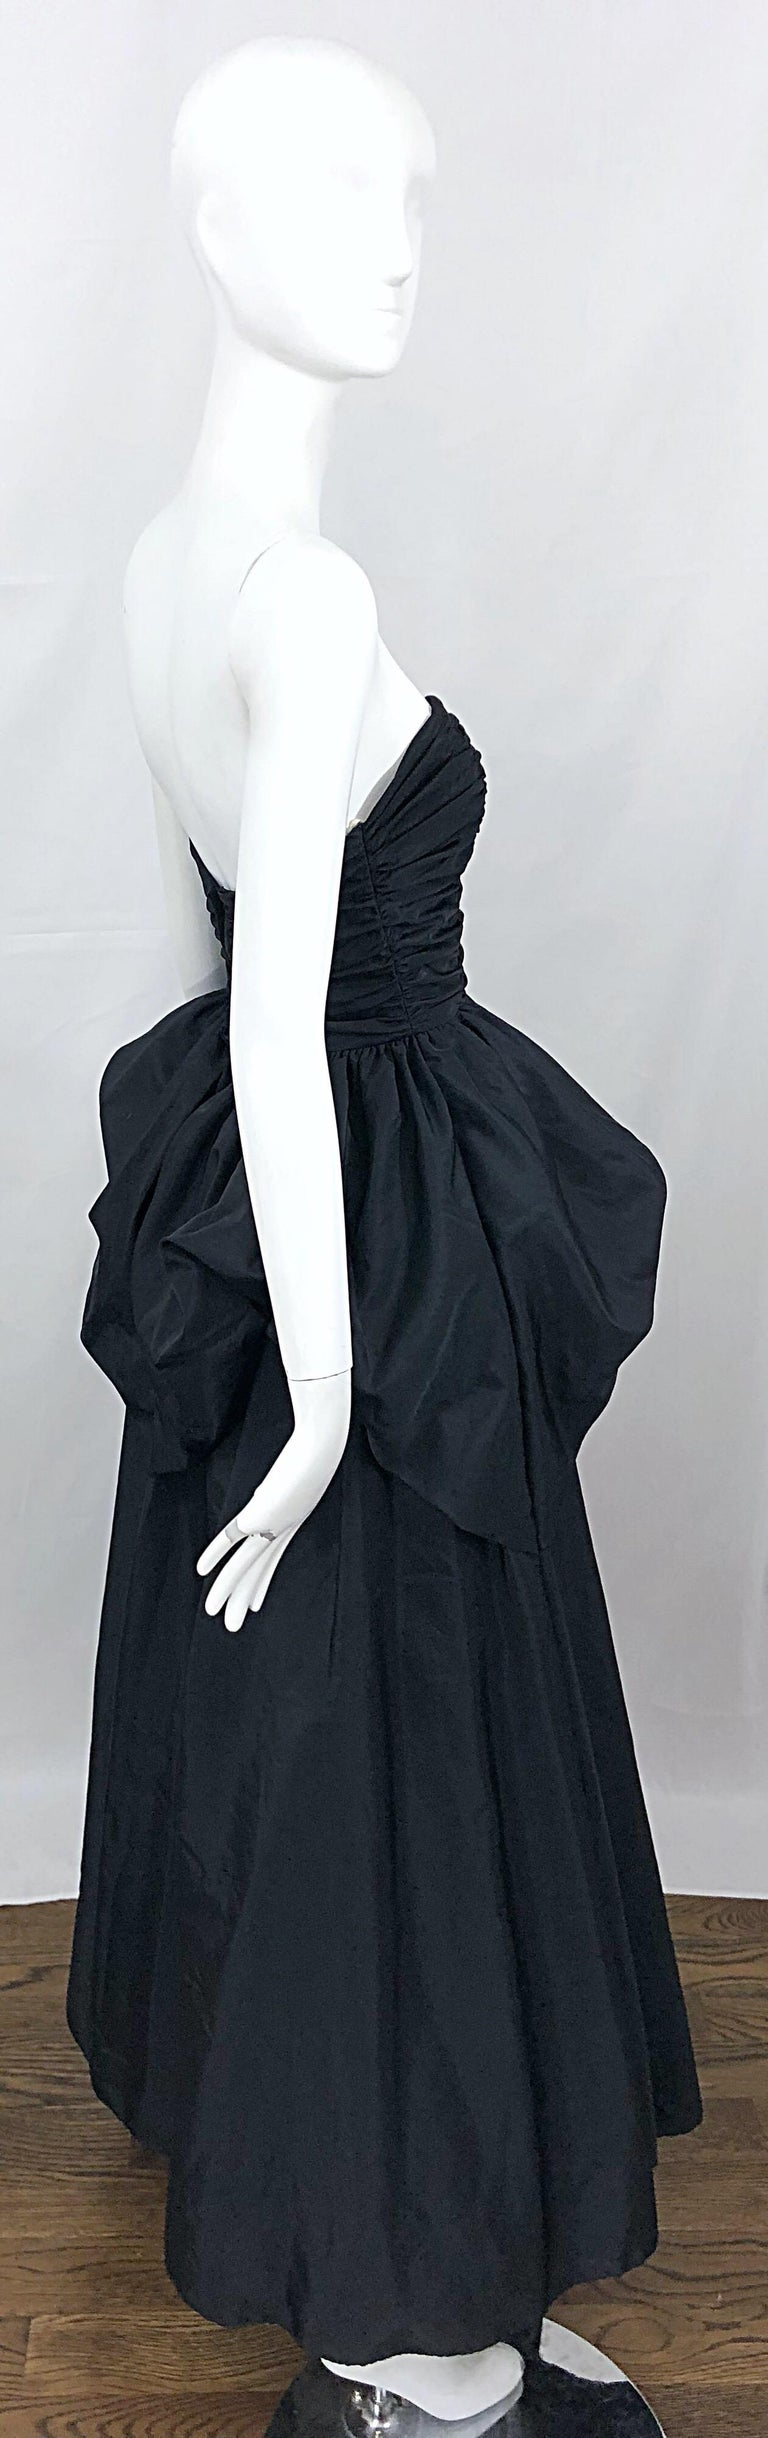 27ae57199785 Vintage Mike Benet Size 0 1980s Black Strapless Rhinestone Strapless Bustle  Gown For Sale 8